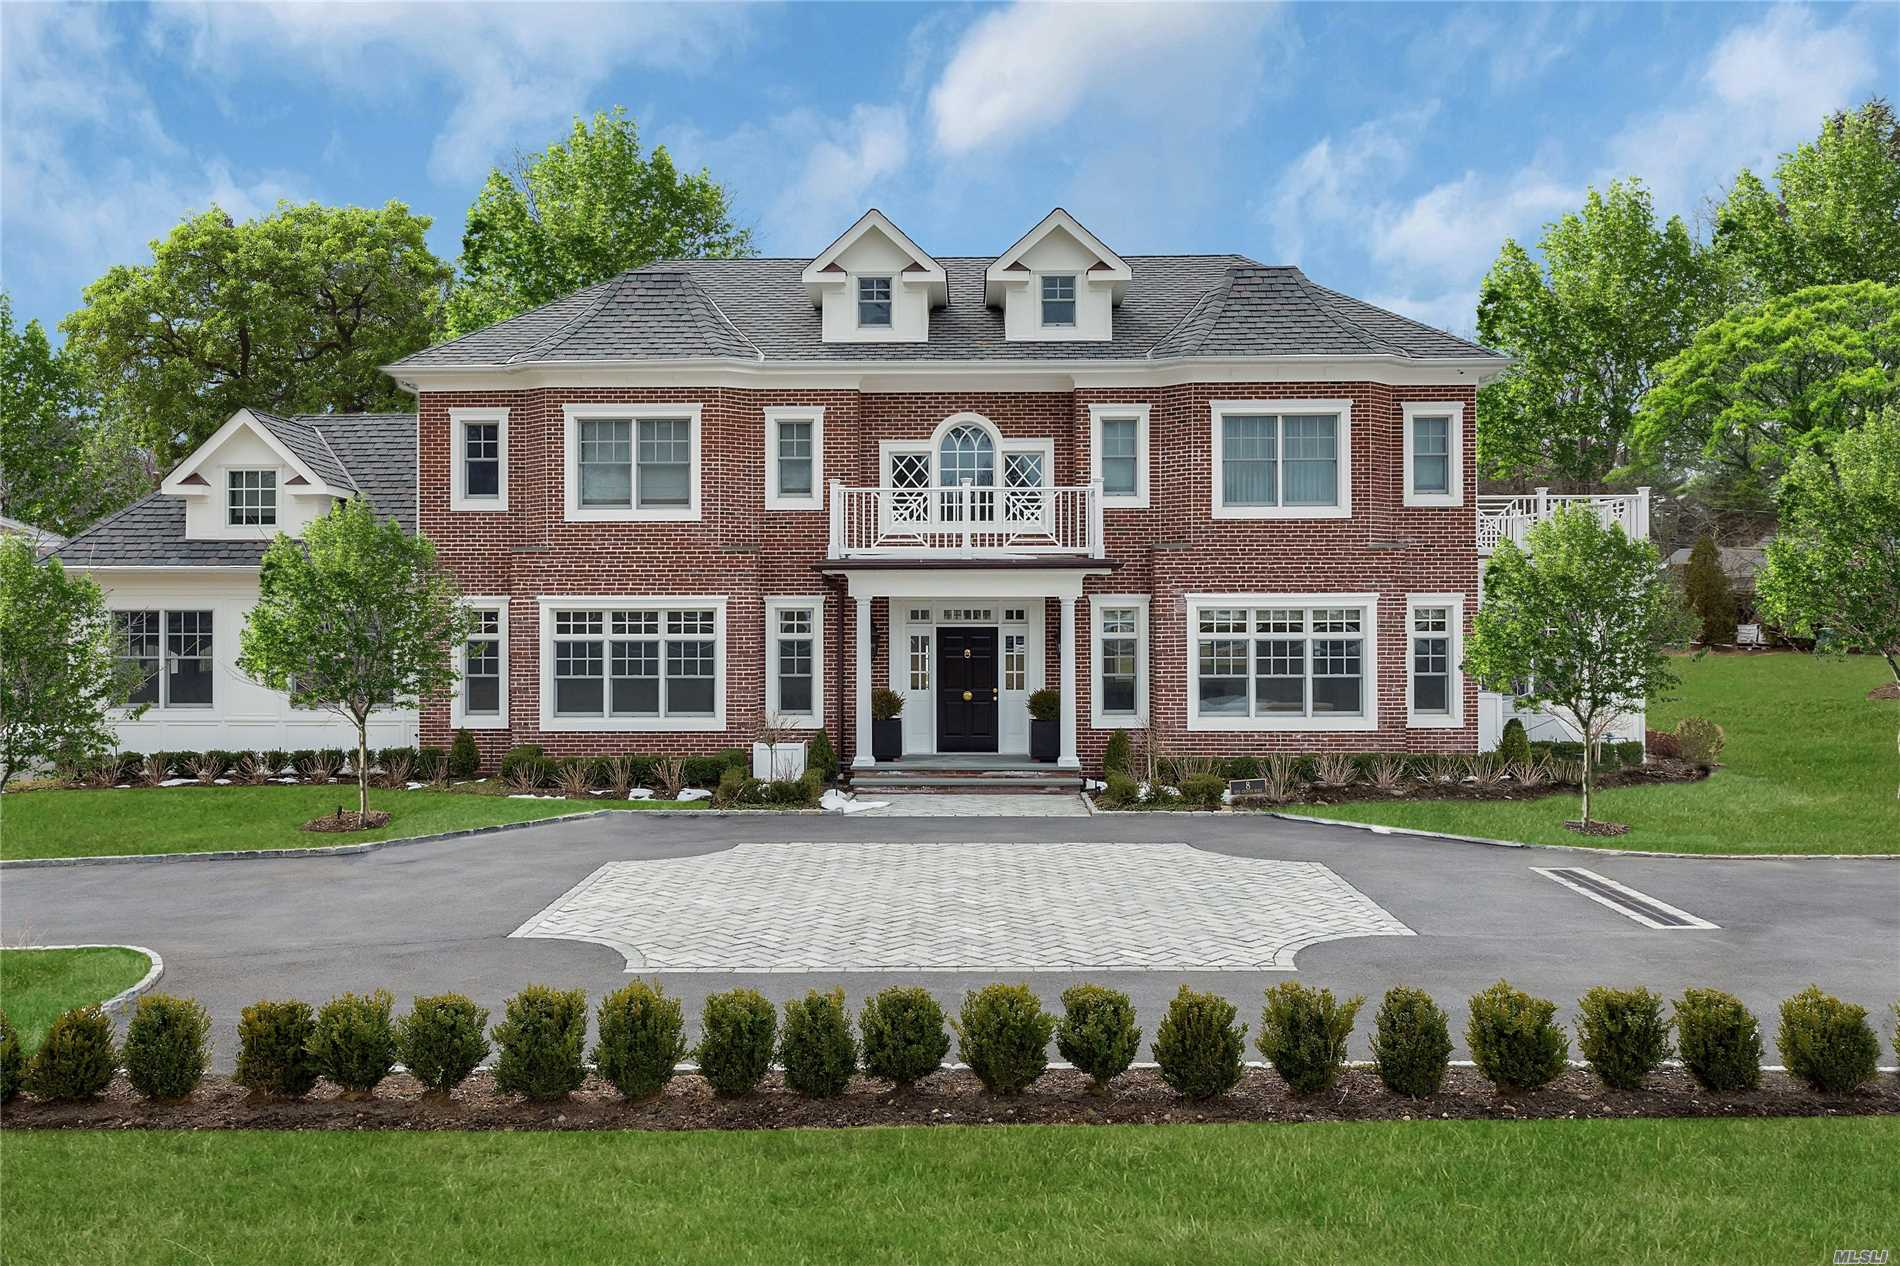 Old Westbury. Sophisticated & Elegant Brick Colonial. Set On A Private Rd In A Private Cul-De-Sac, Along With Two Other Exquisite Estates, On Almost 2 Acres. Featuring Impeccable Details Throughout With Flawless Finishes, Floor To Ceiling Marble Double Sided Fireplace, Refreshing Eik With White Cabinetry/Marble & Stainless Steel High End Appliances, Coffered Ceilings, & Much More!